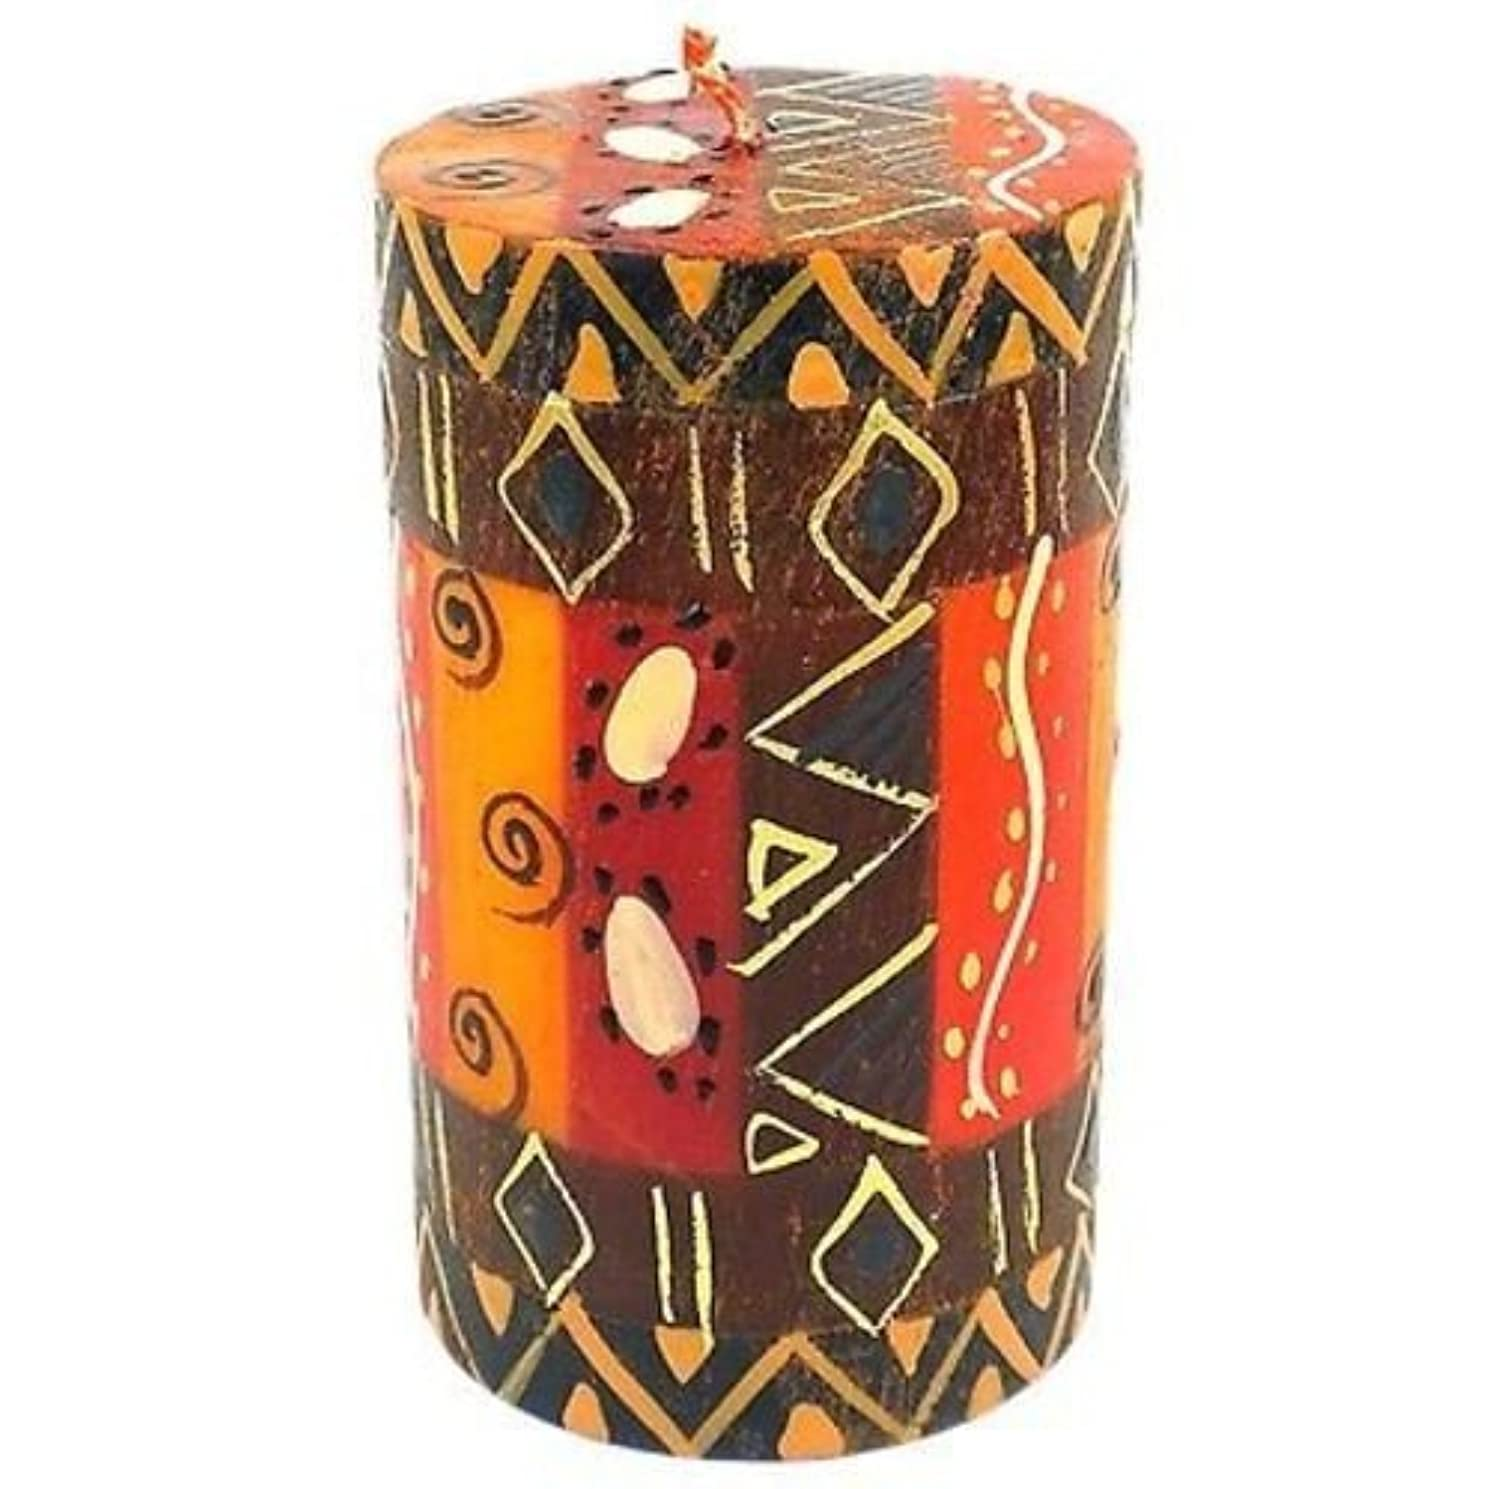 姉妹固体広々としたNobunto Single Boxed Hand-Painted Pillar Candle - Bongazi Design